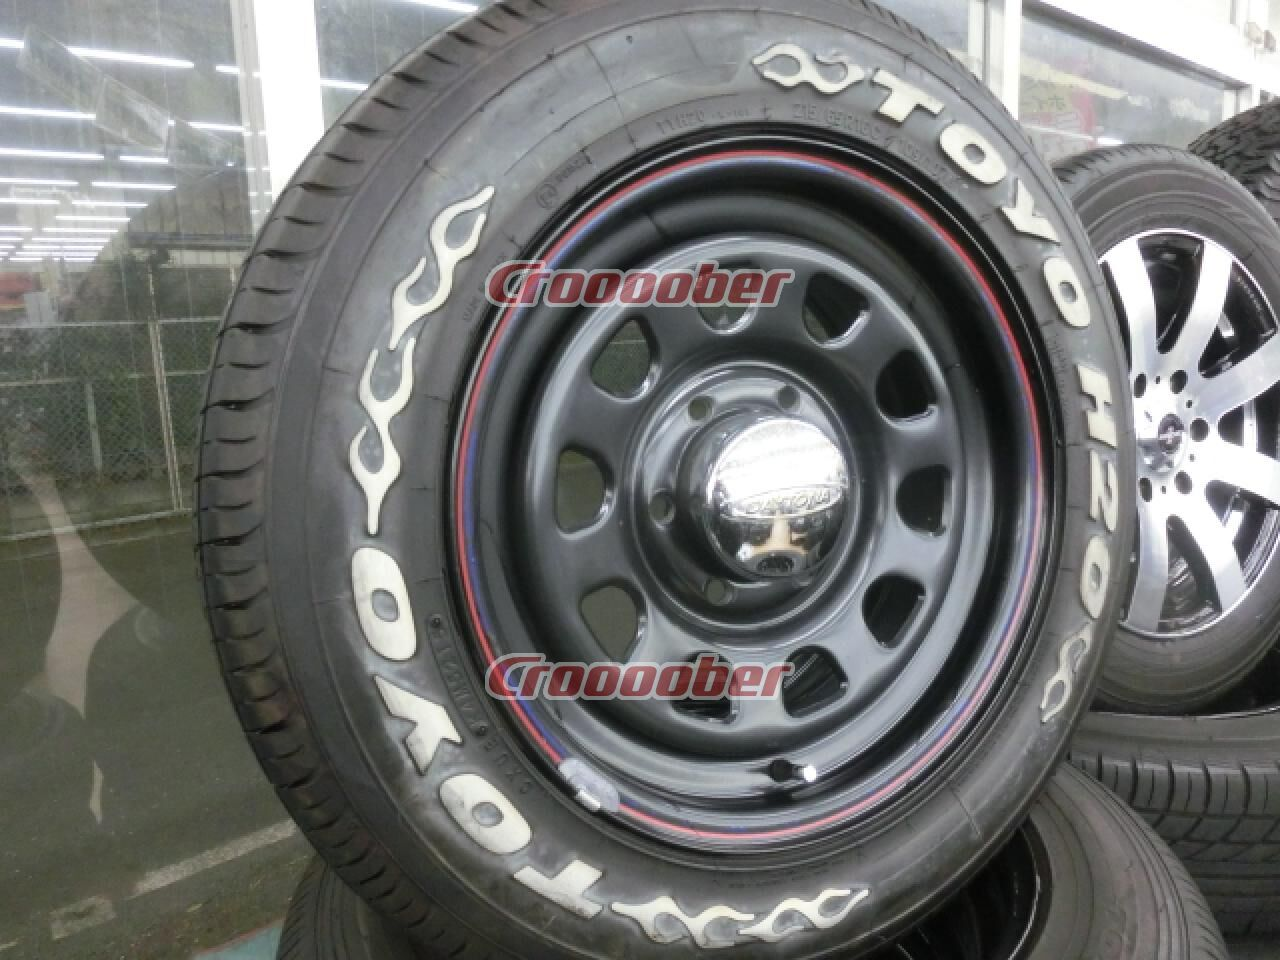 Toyo Tires White Letters >> Ss Daytona Esuesu Toyo H20 White Letter Tire 6 0jx16 38139 7 6h For Sale Croooober